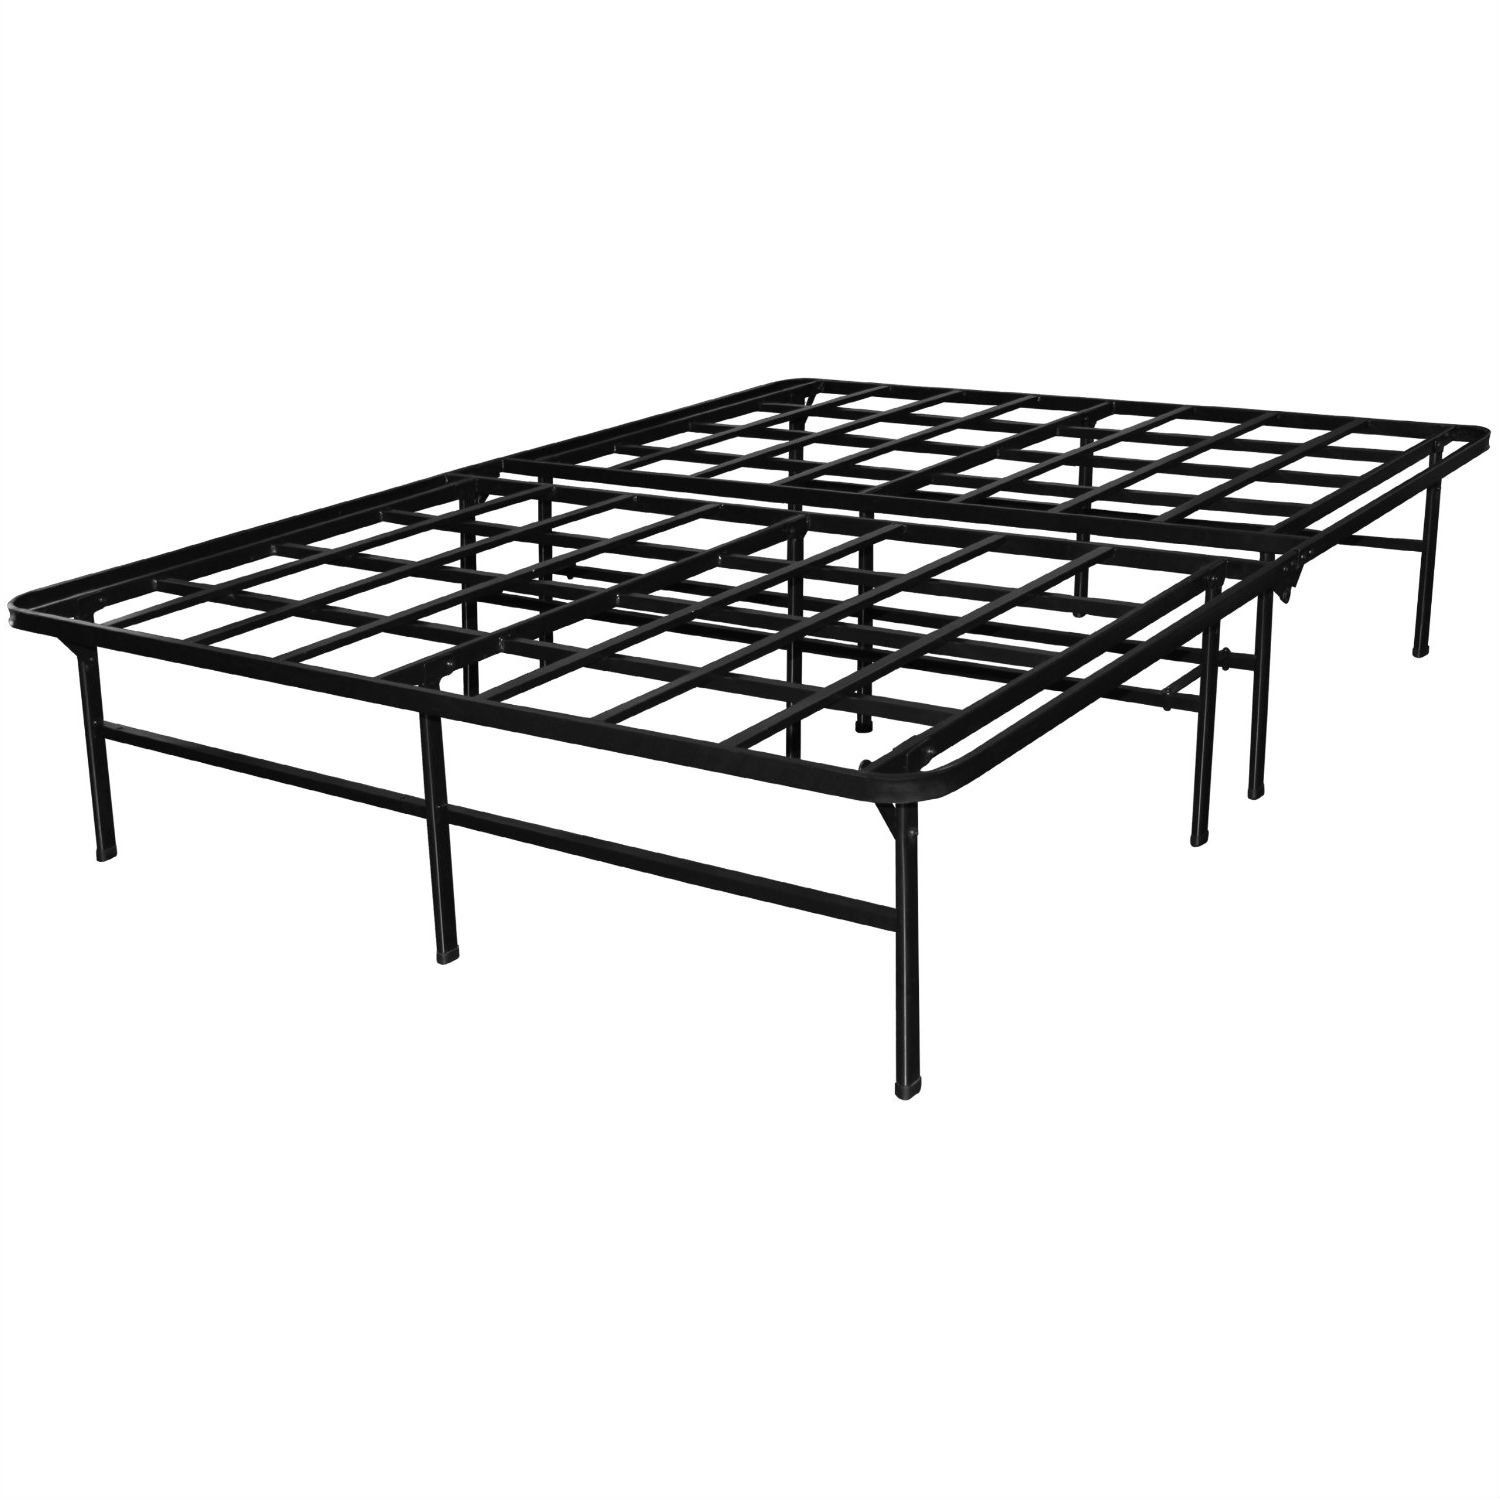 Queen Size Heavy Duty Metal Platform Bed Frame Supports Up To 4 400 Lbs